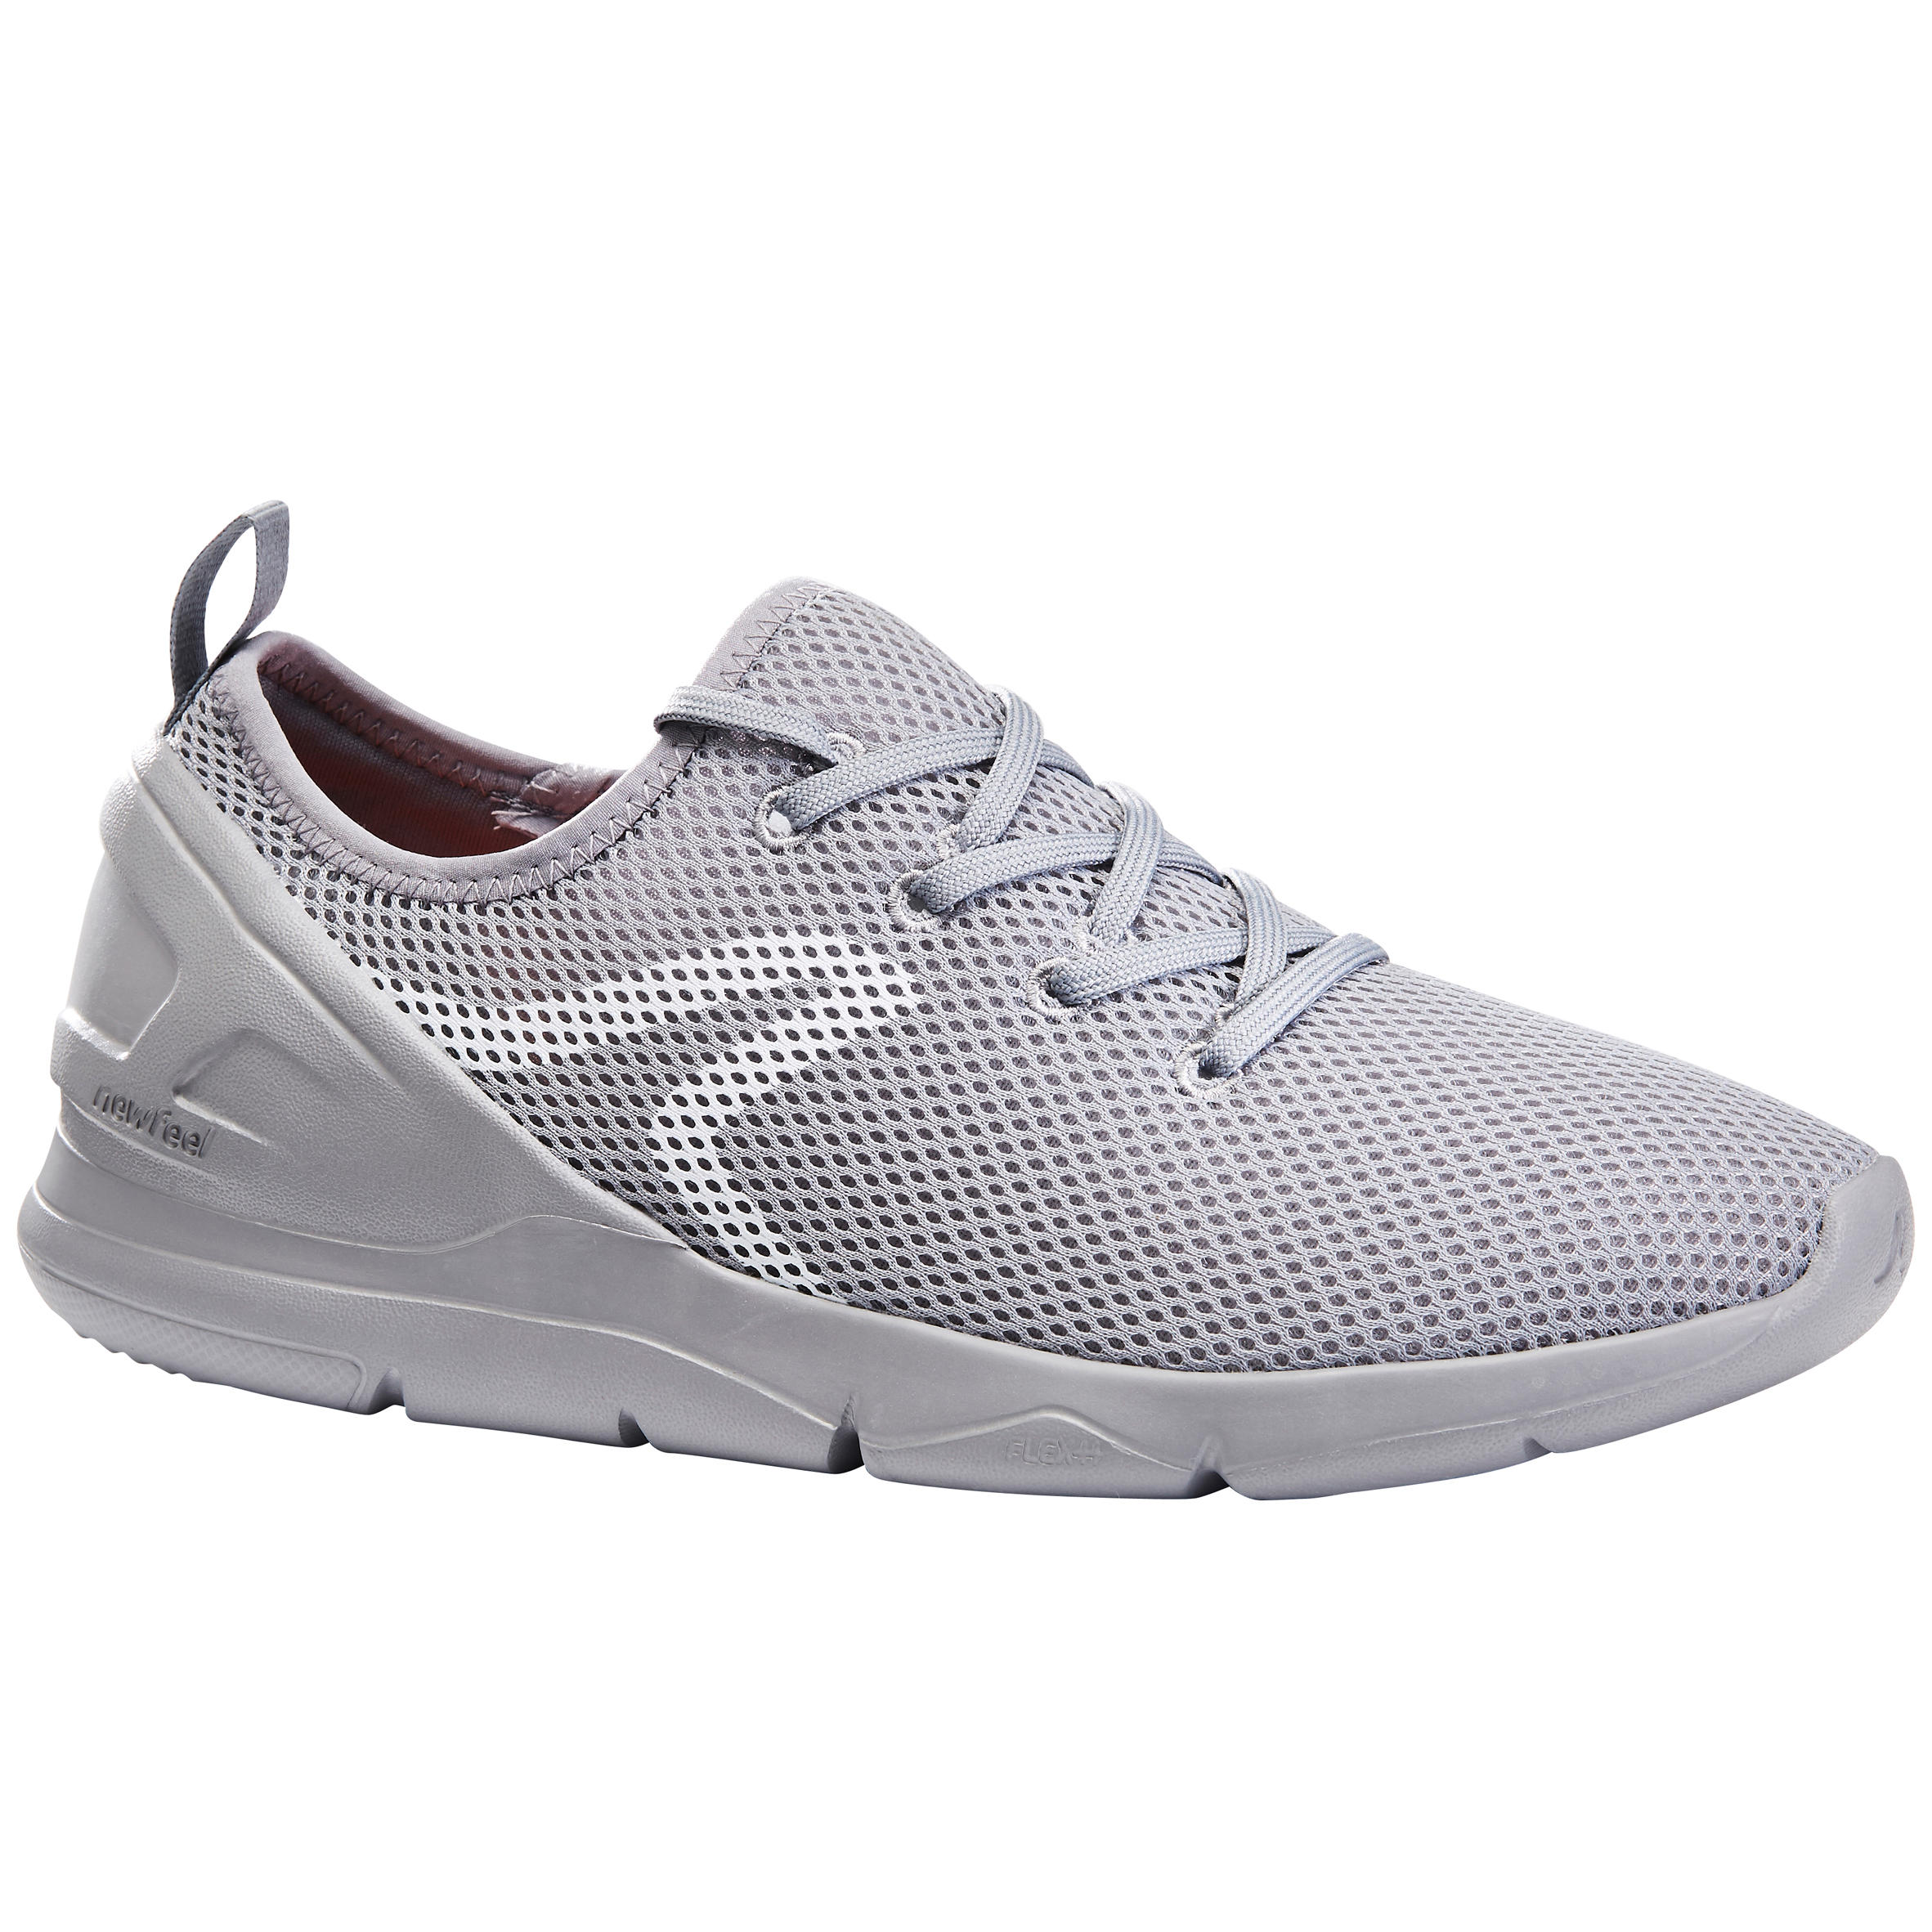 Womens Breathable Fitness Walking Shoes